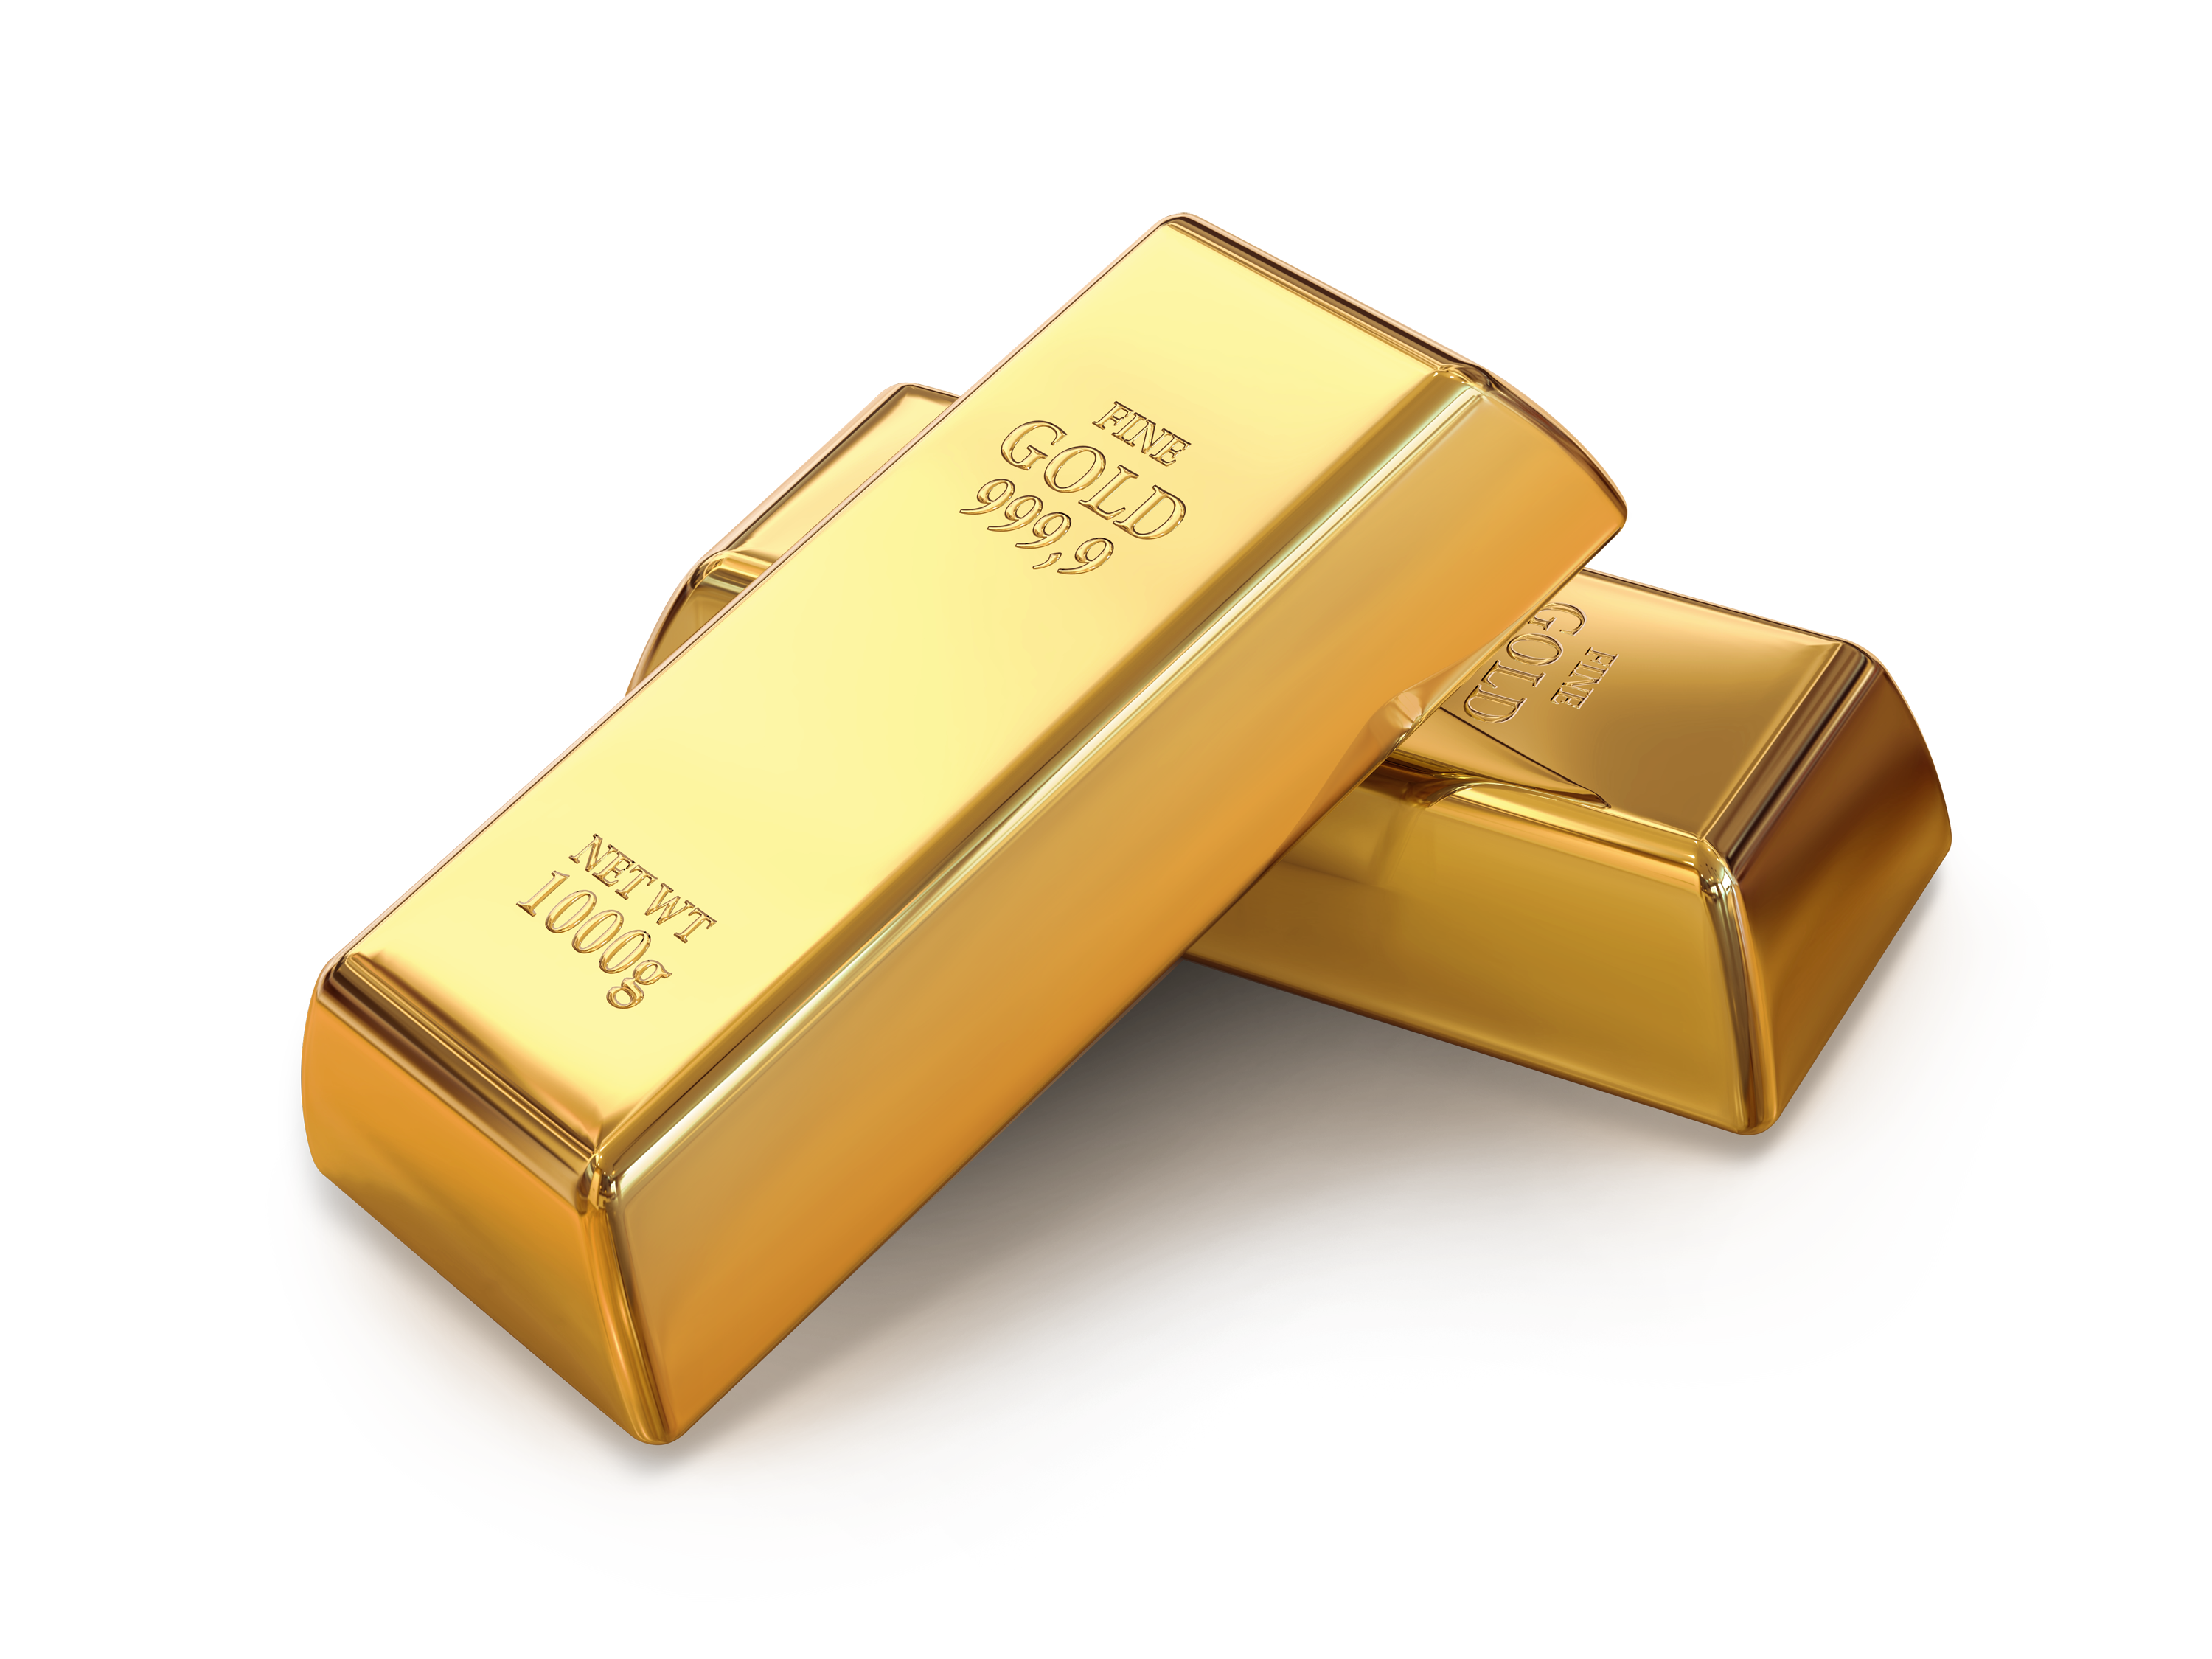 Gold png. Two bars image purepng